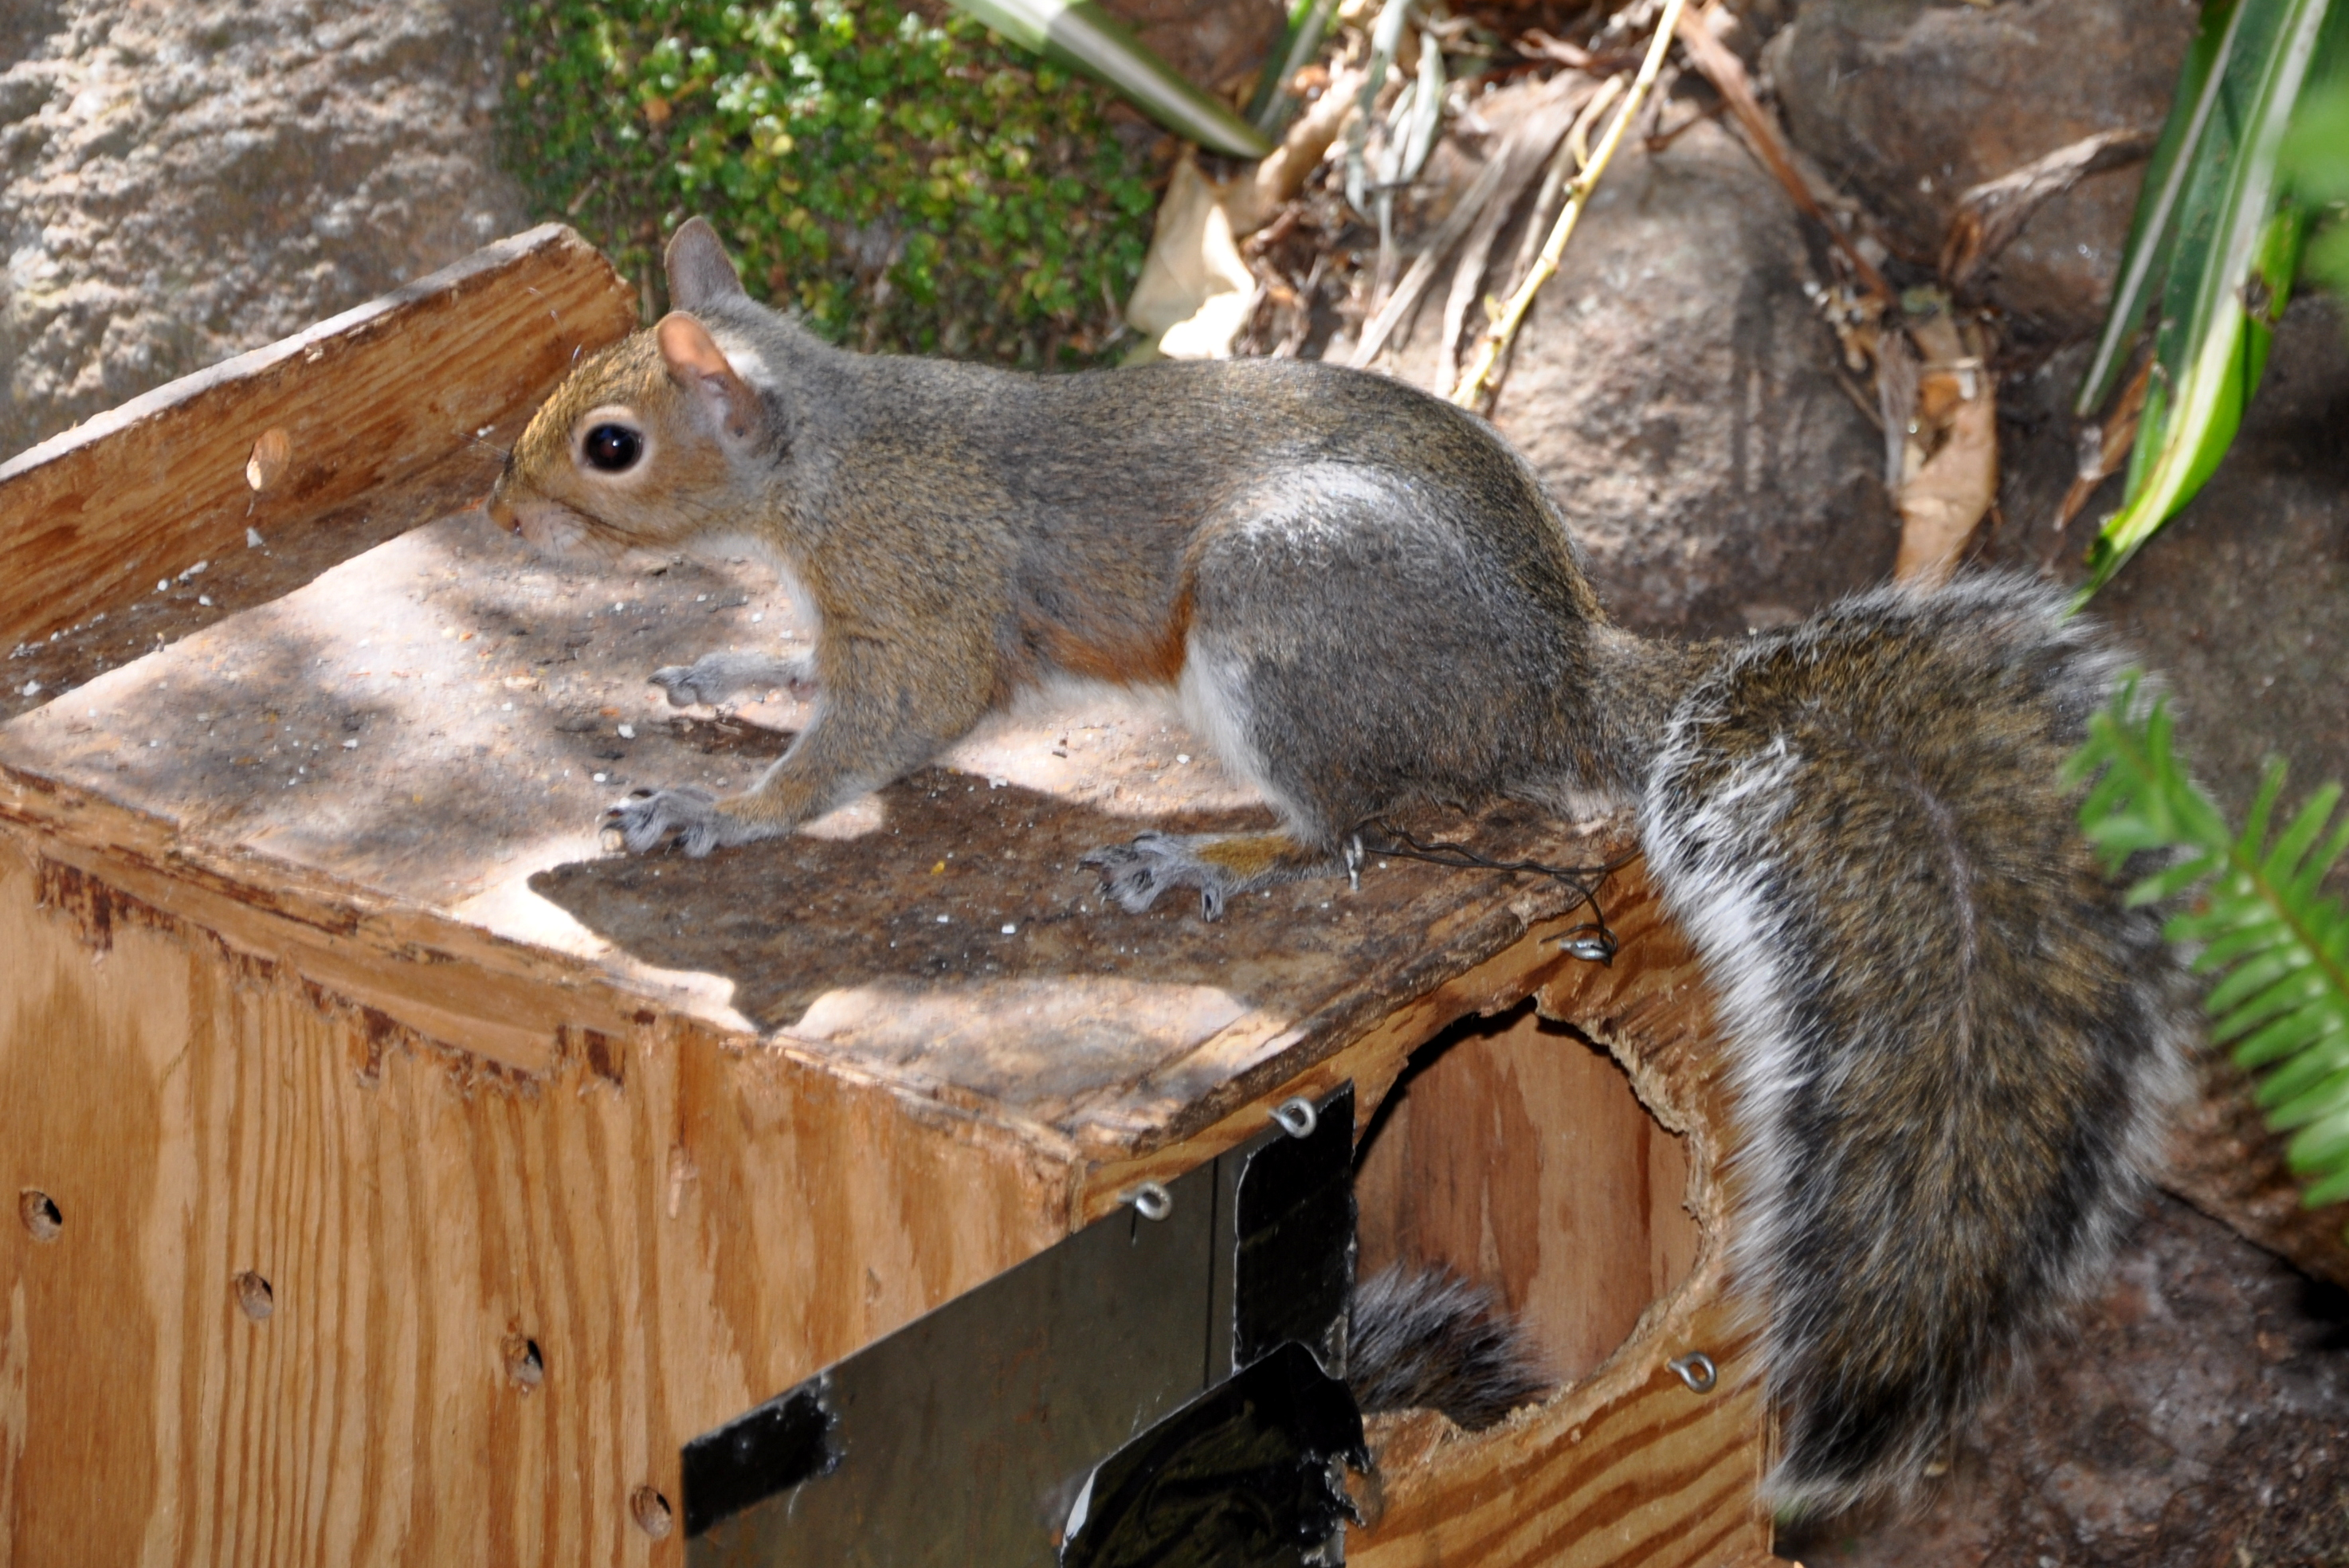 A Scurry of Baby Squirrels – Gardening Nirvana